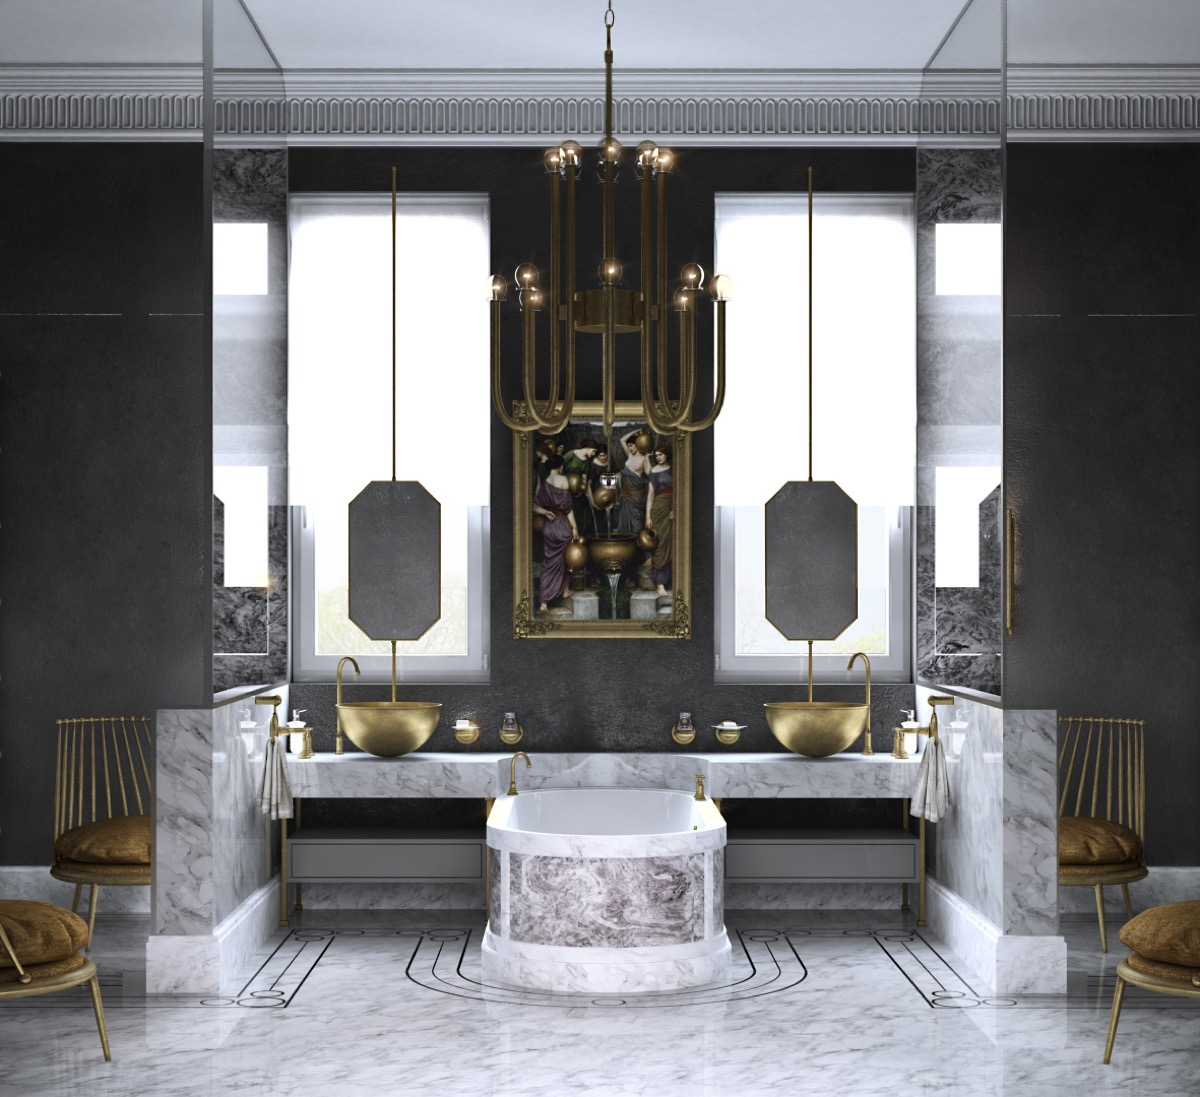 50 Luxury Bathrooms And Tips You Can Copy From Them images 47